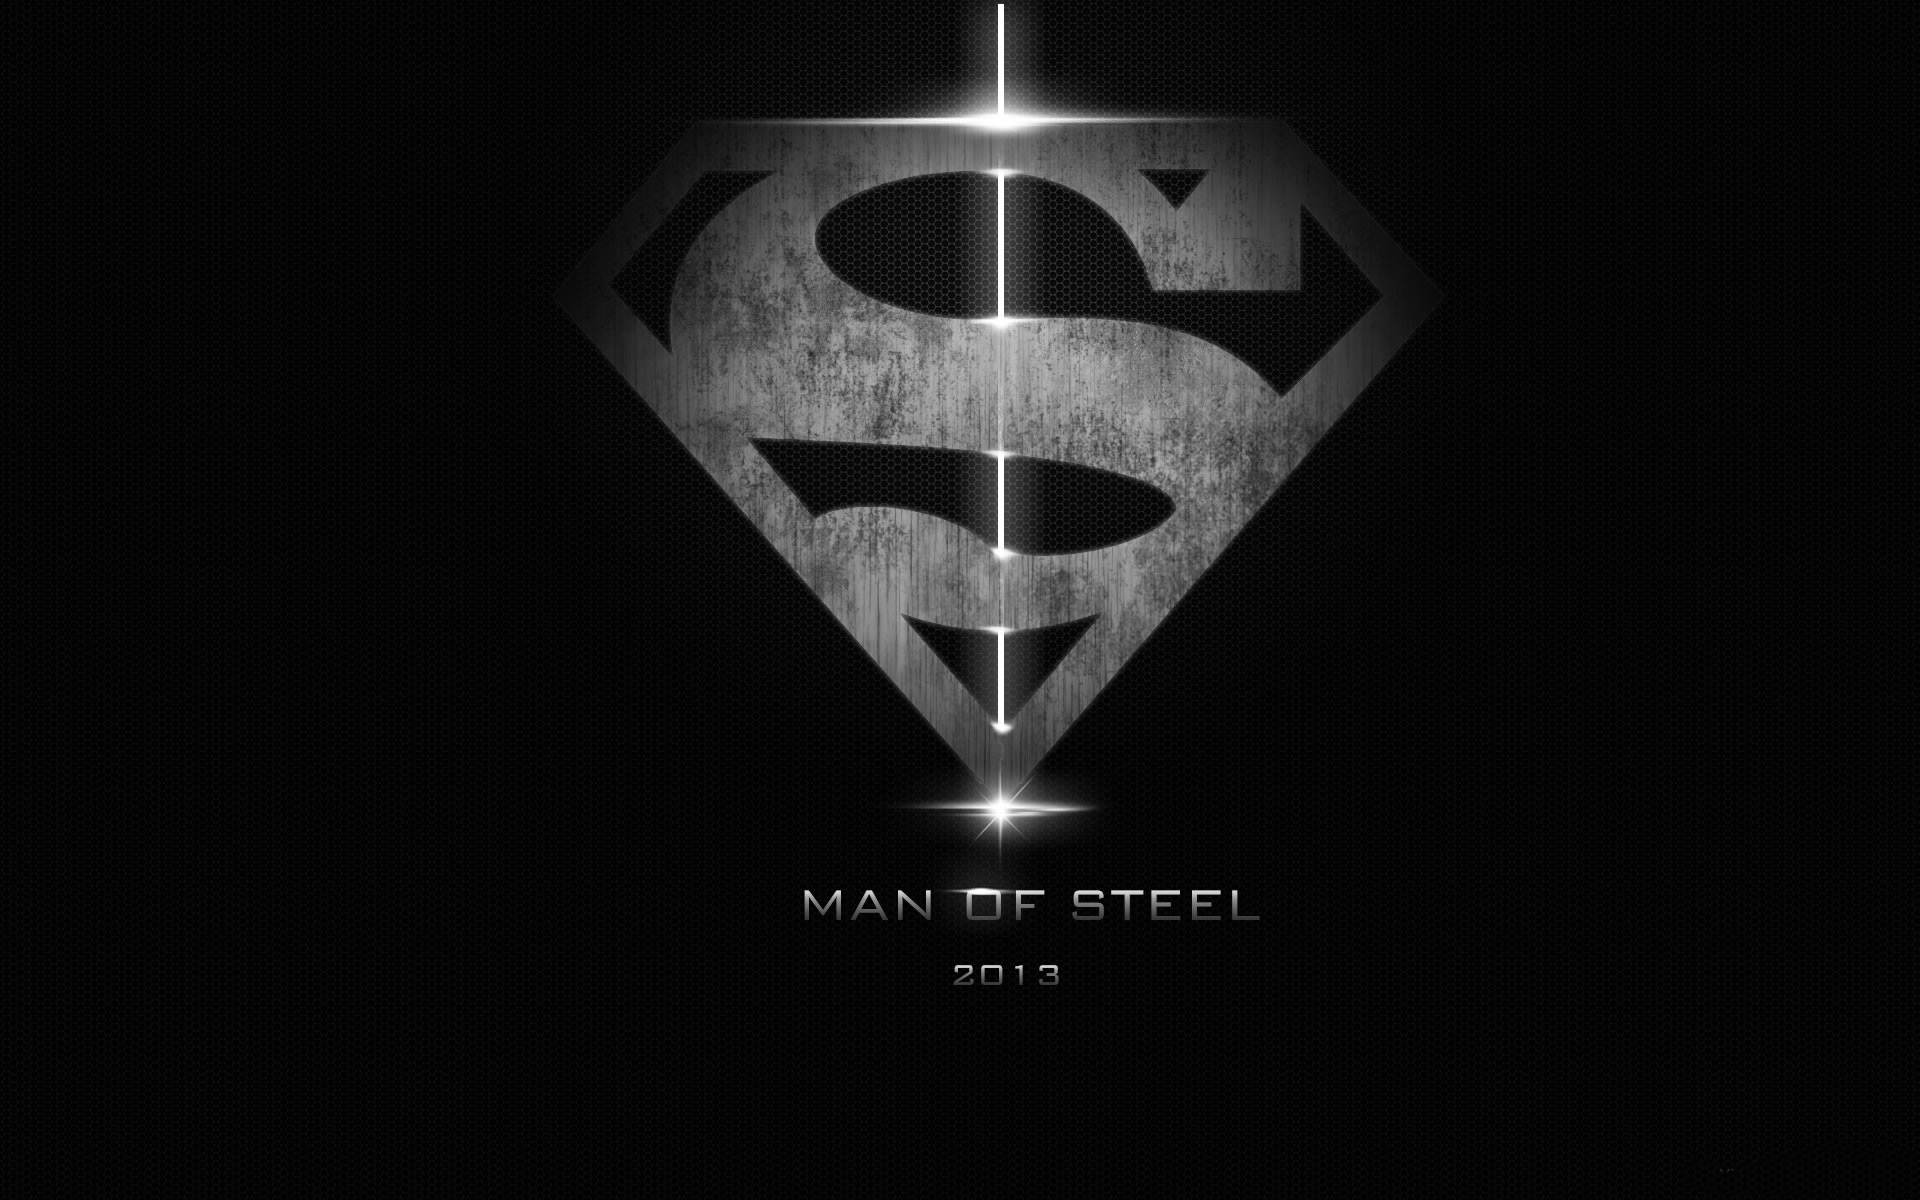 Póster Man of Steel.